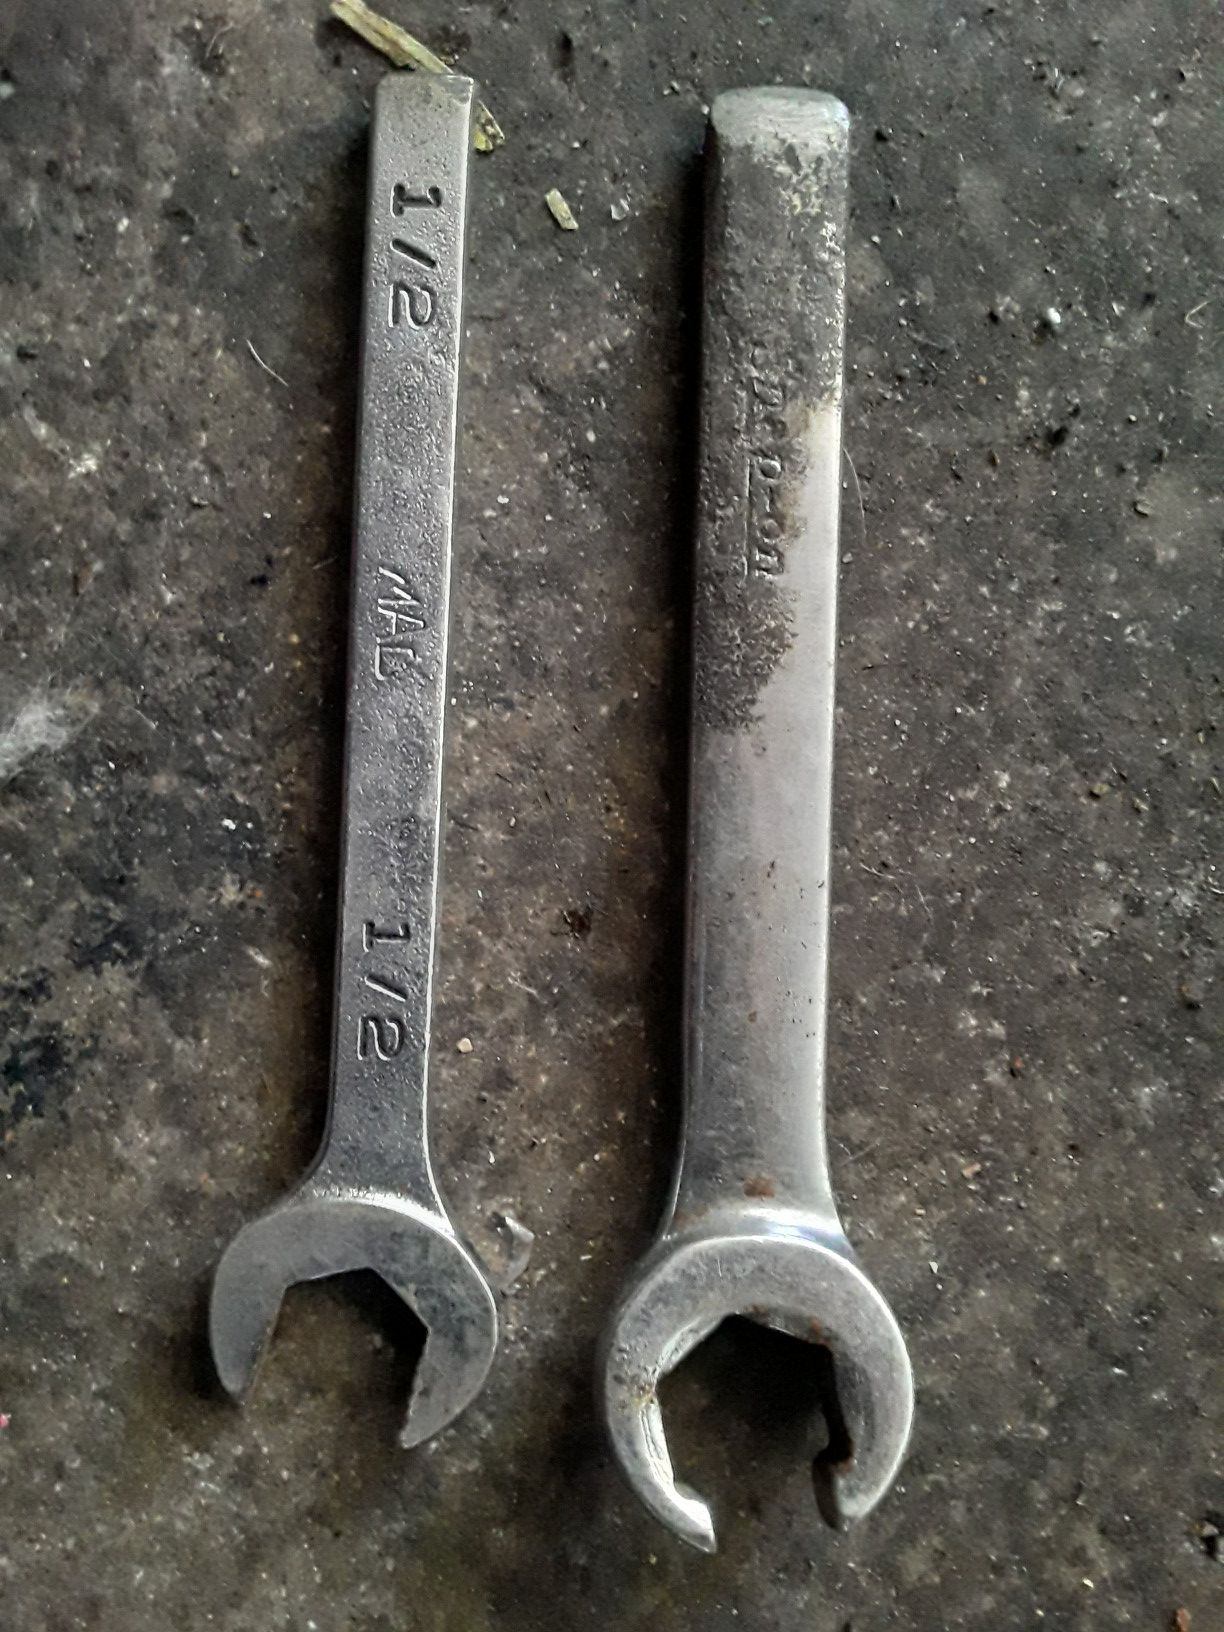 Snap-On and Mac Broken Wrenches